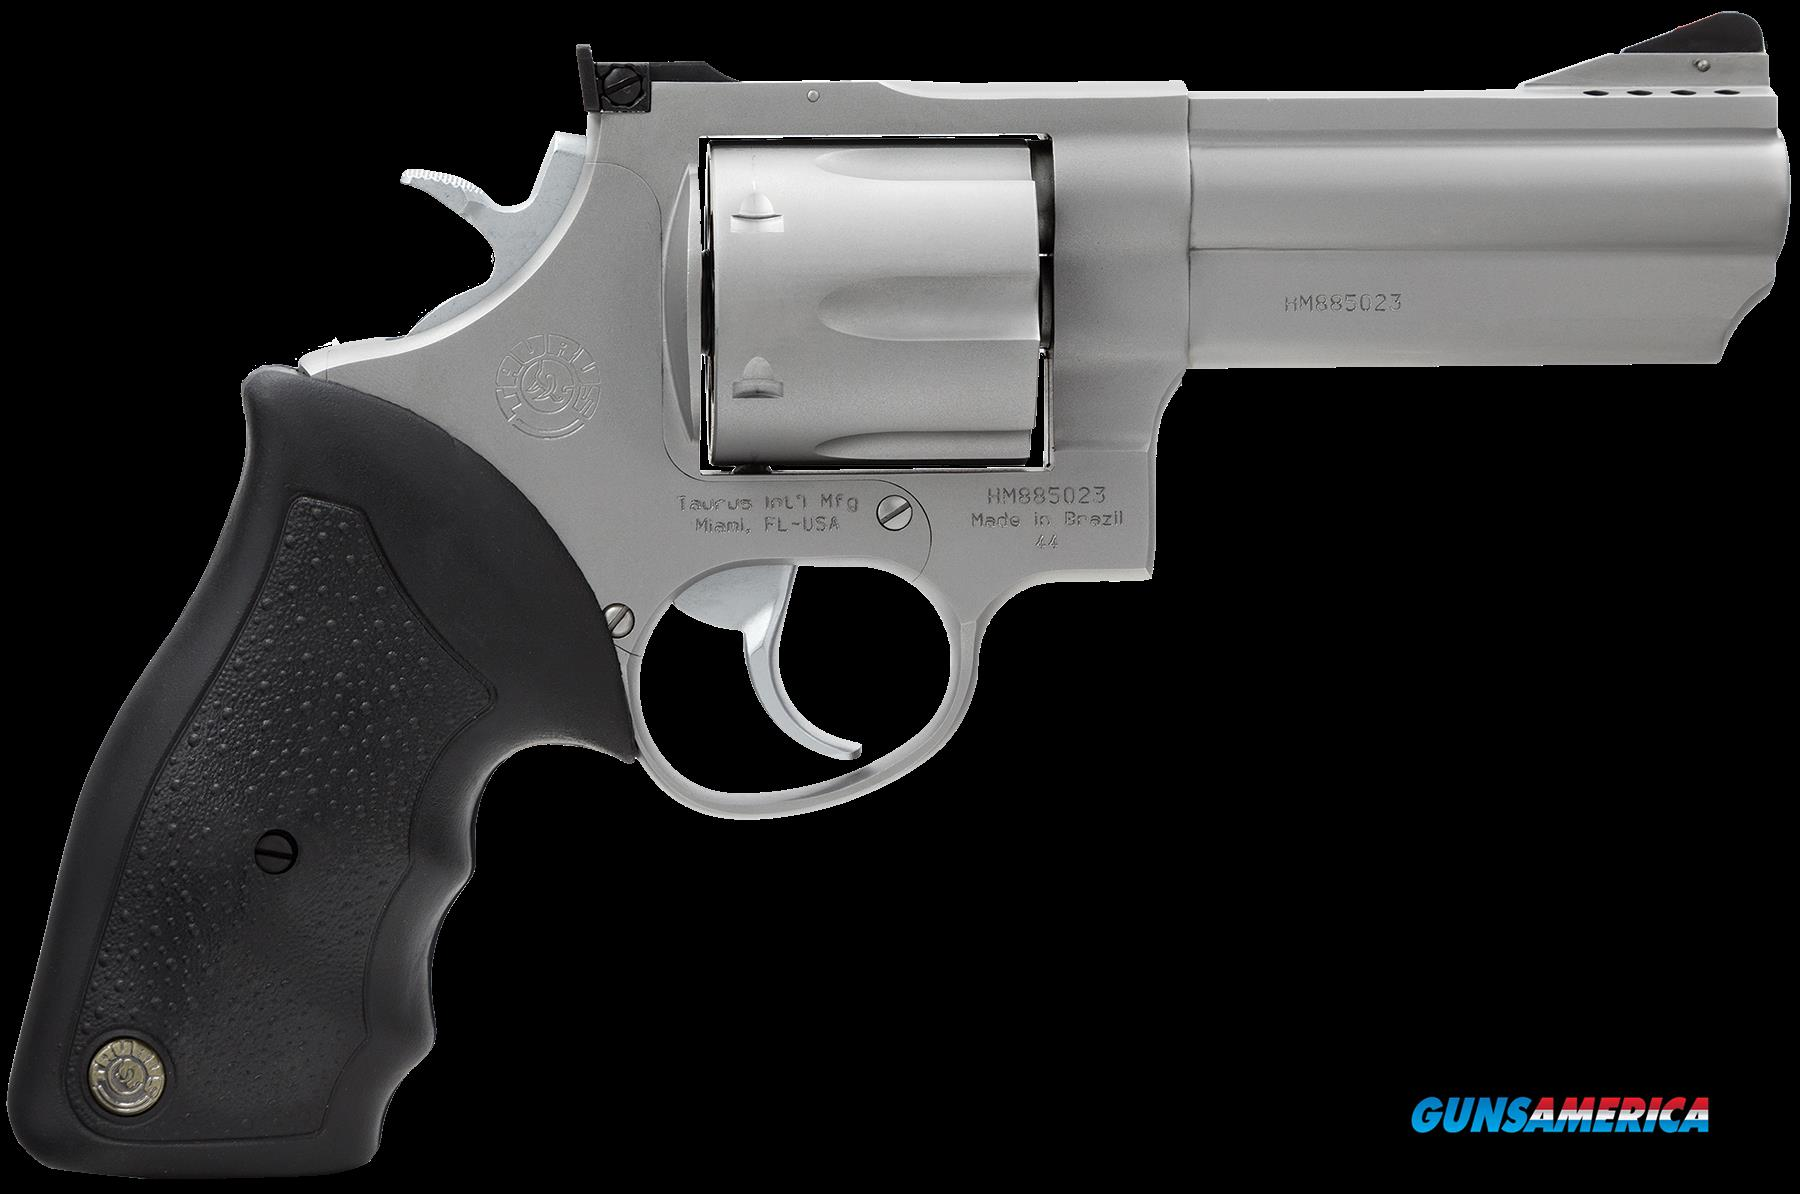 "Taurus 2440049 44 Ported Single/Double 44 Remington Magnum 4"" 6 rd Black Rubber Grip Stainless Steel  Guns > Pistols > Taurus Pistols > Revolvers"